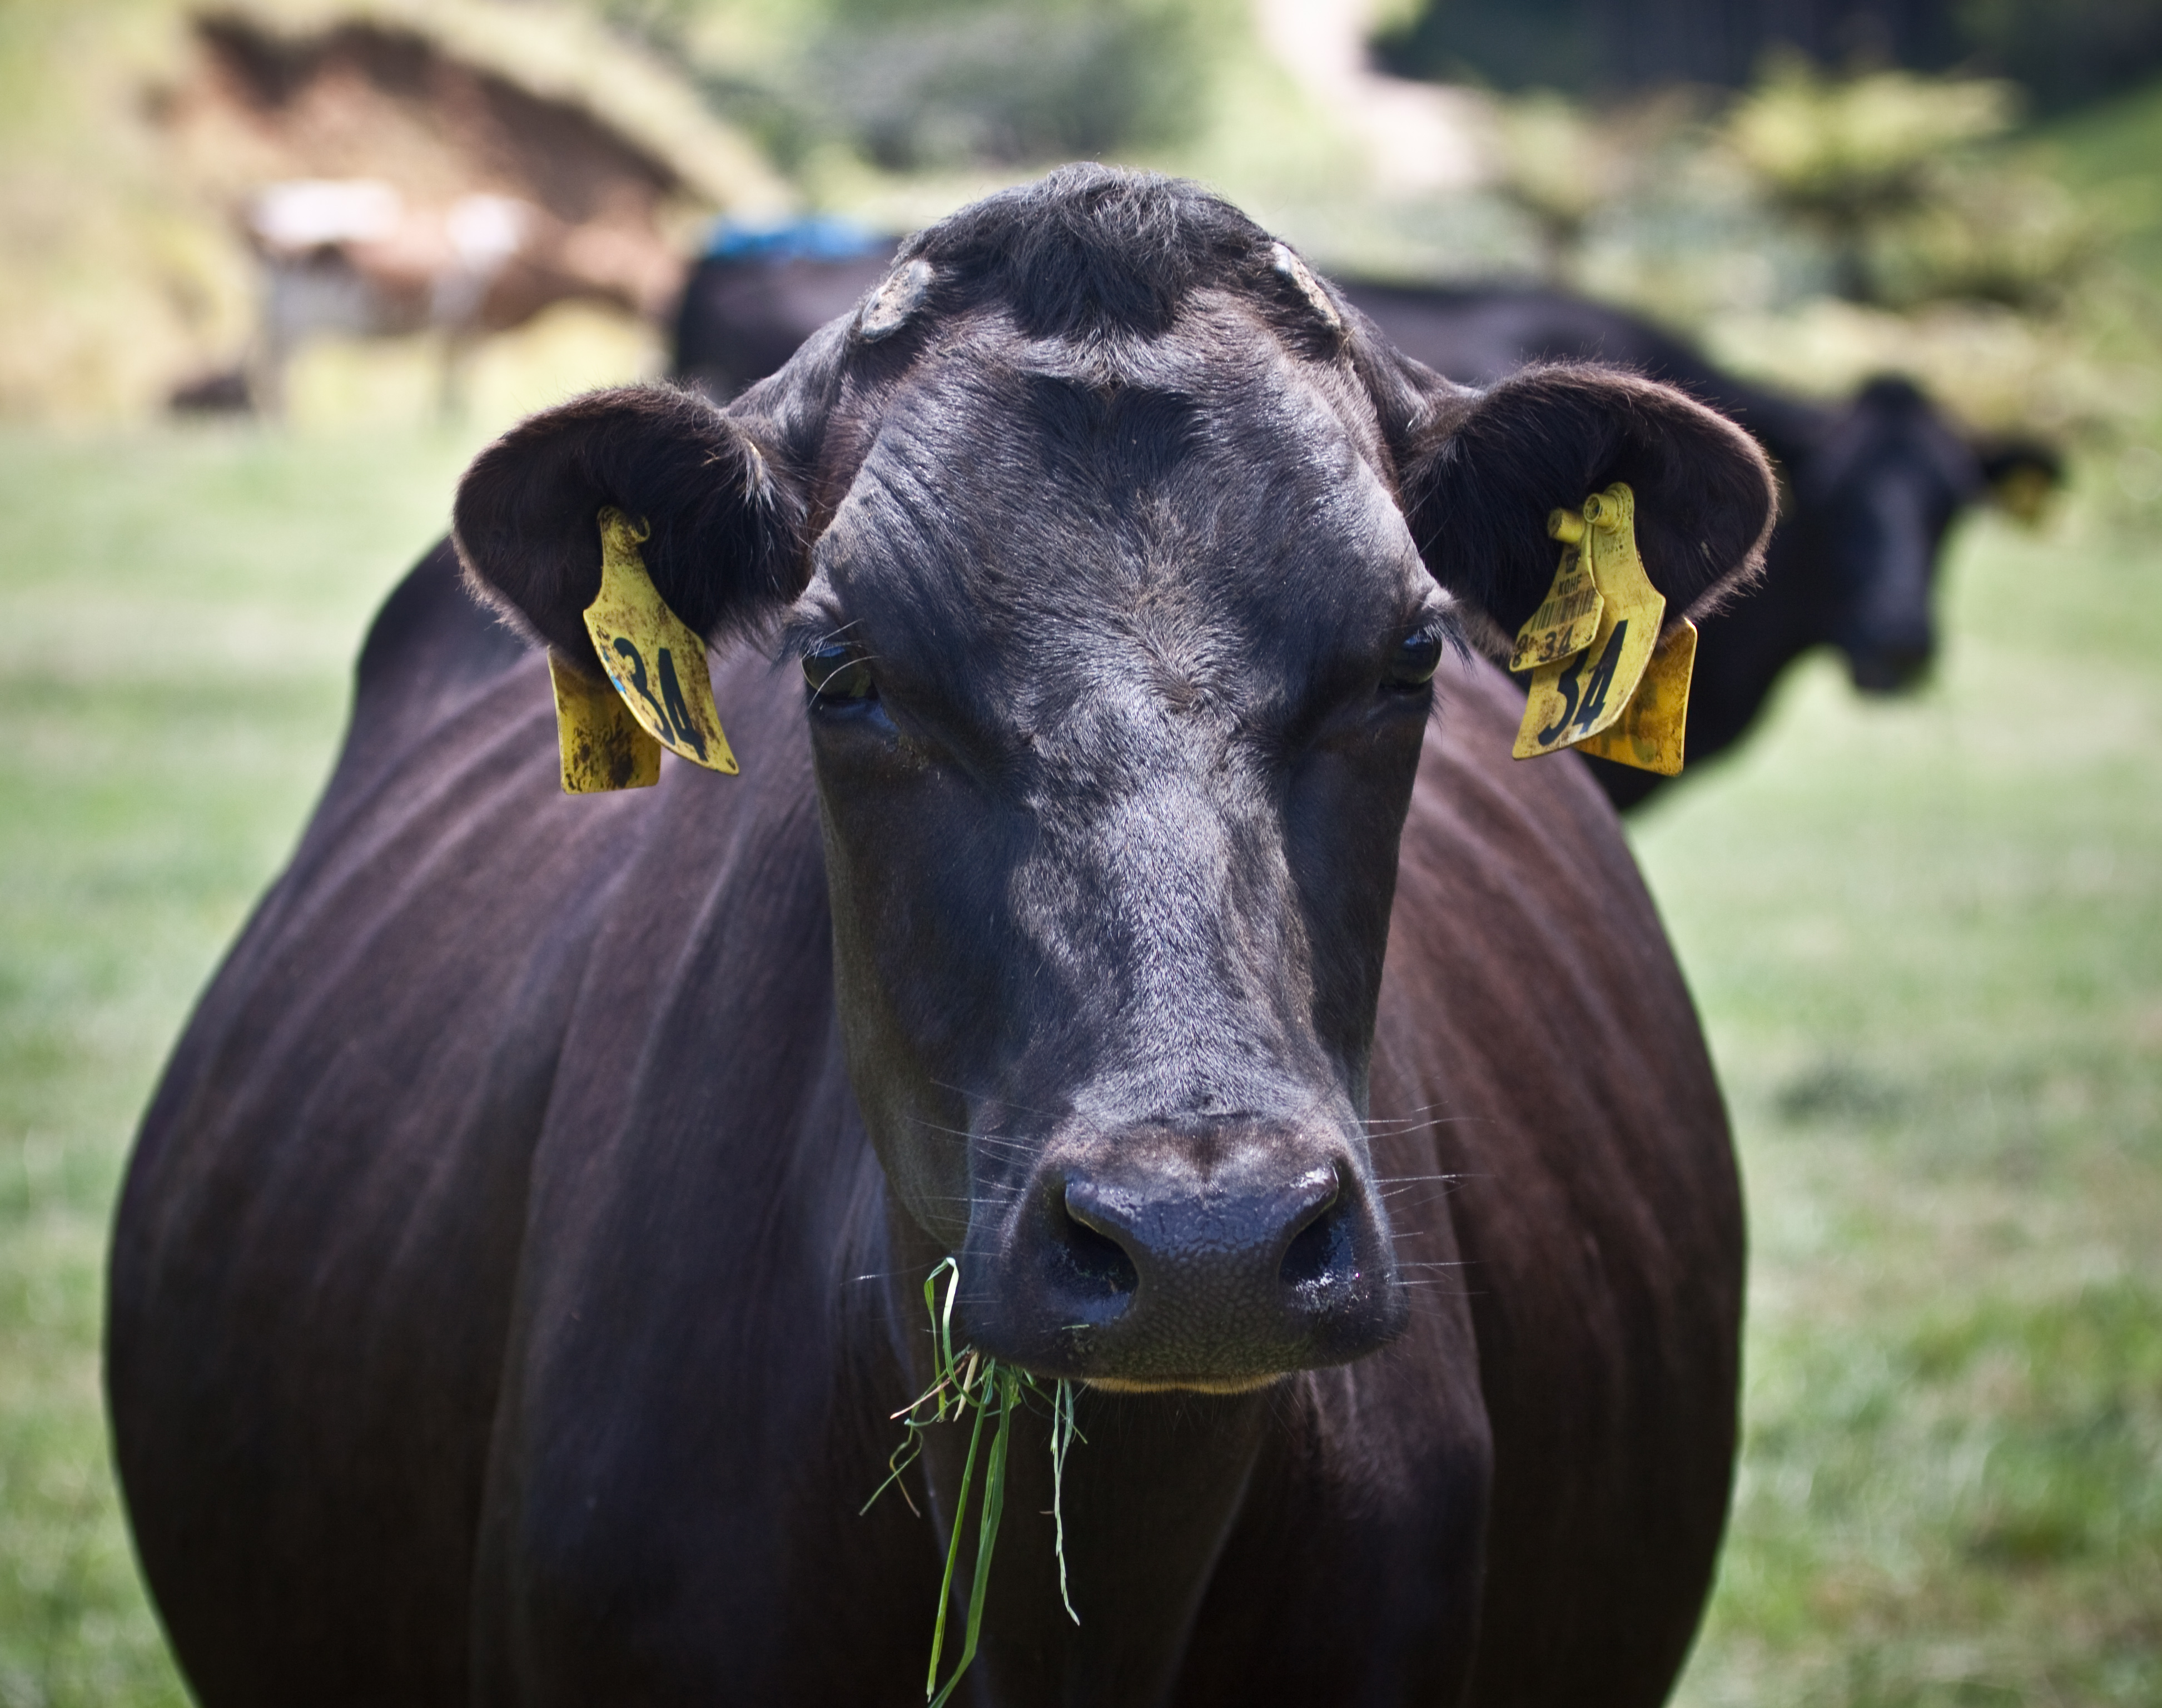 Dairy Cows Wiki a Dehorned Dairy Cow in New